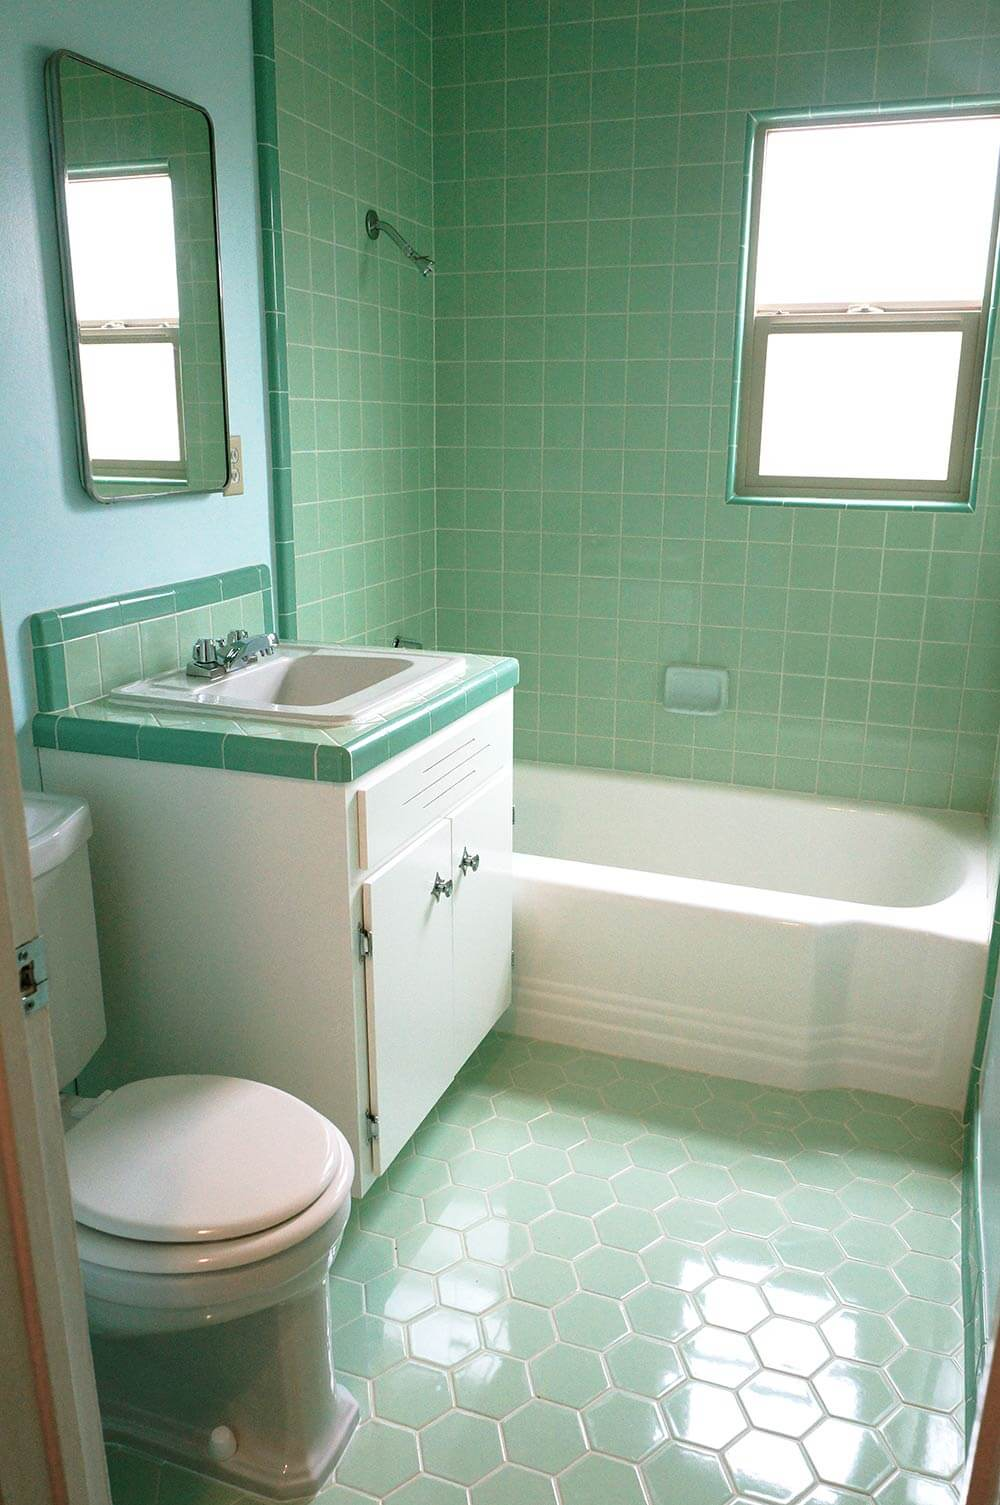 The color green in kitchen and bathroom sinks tubs and for 2 bathroom